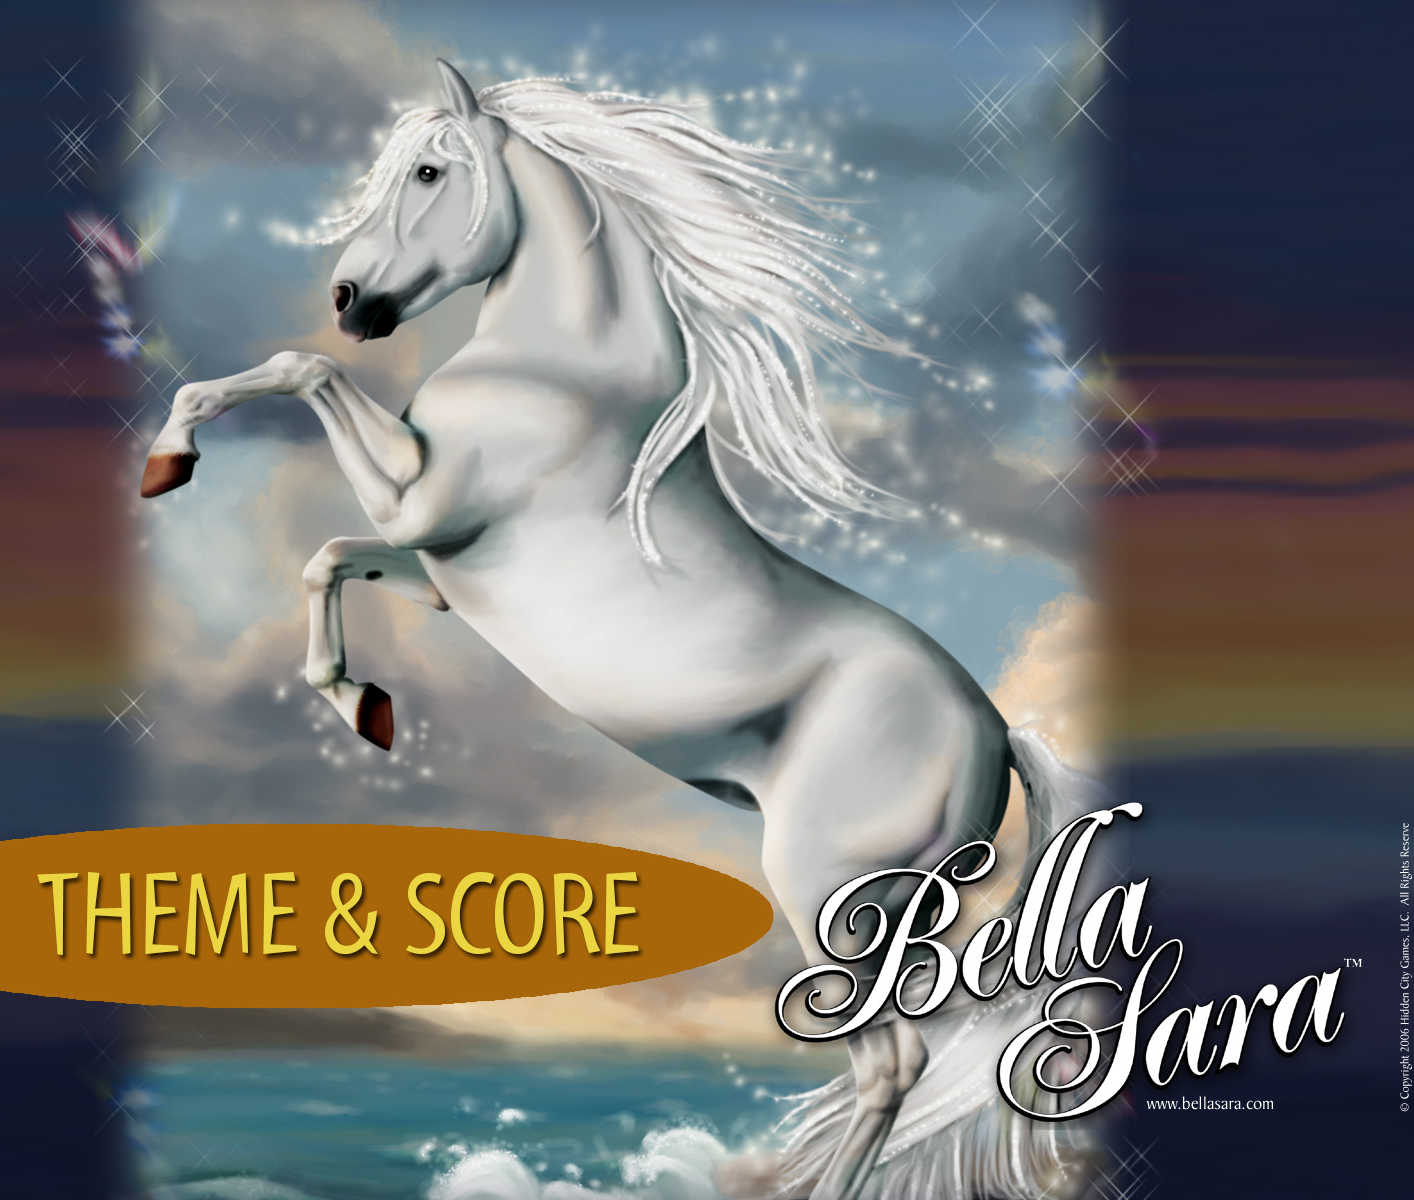 Bella-Sara score